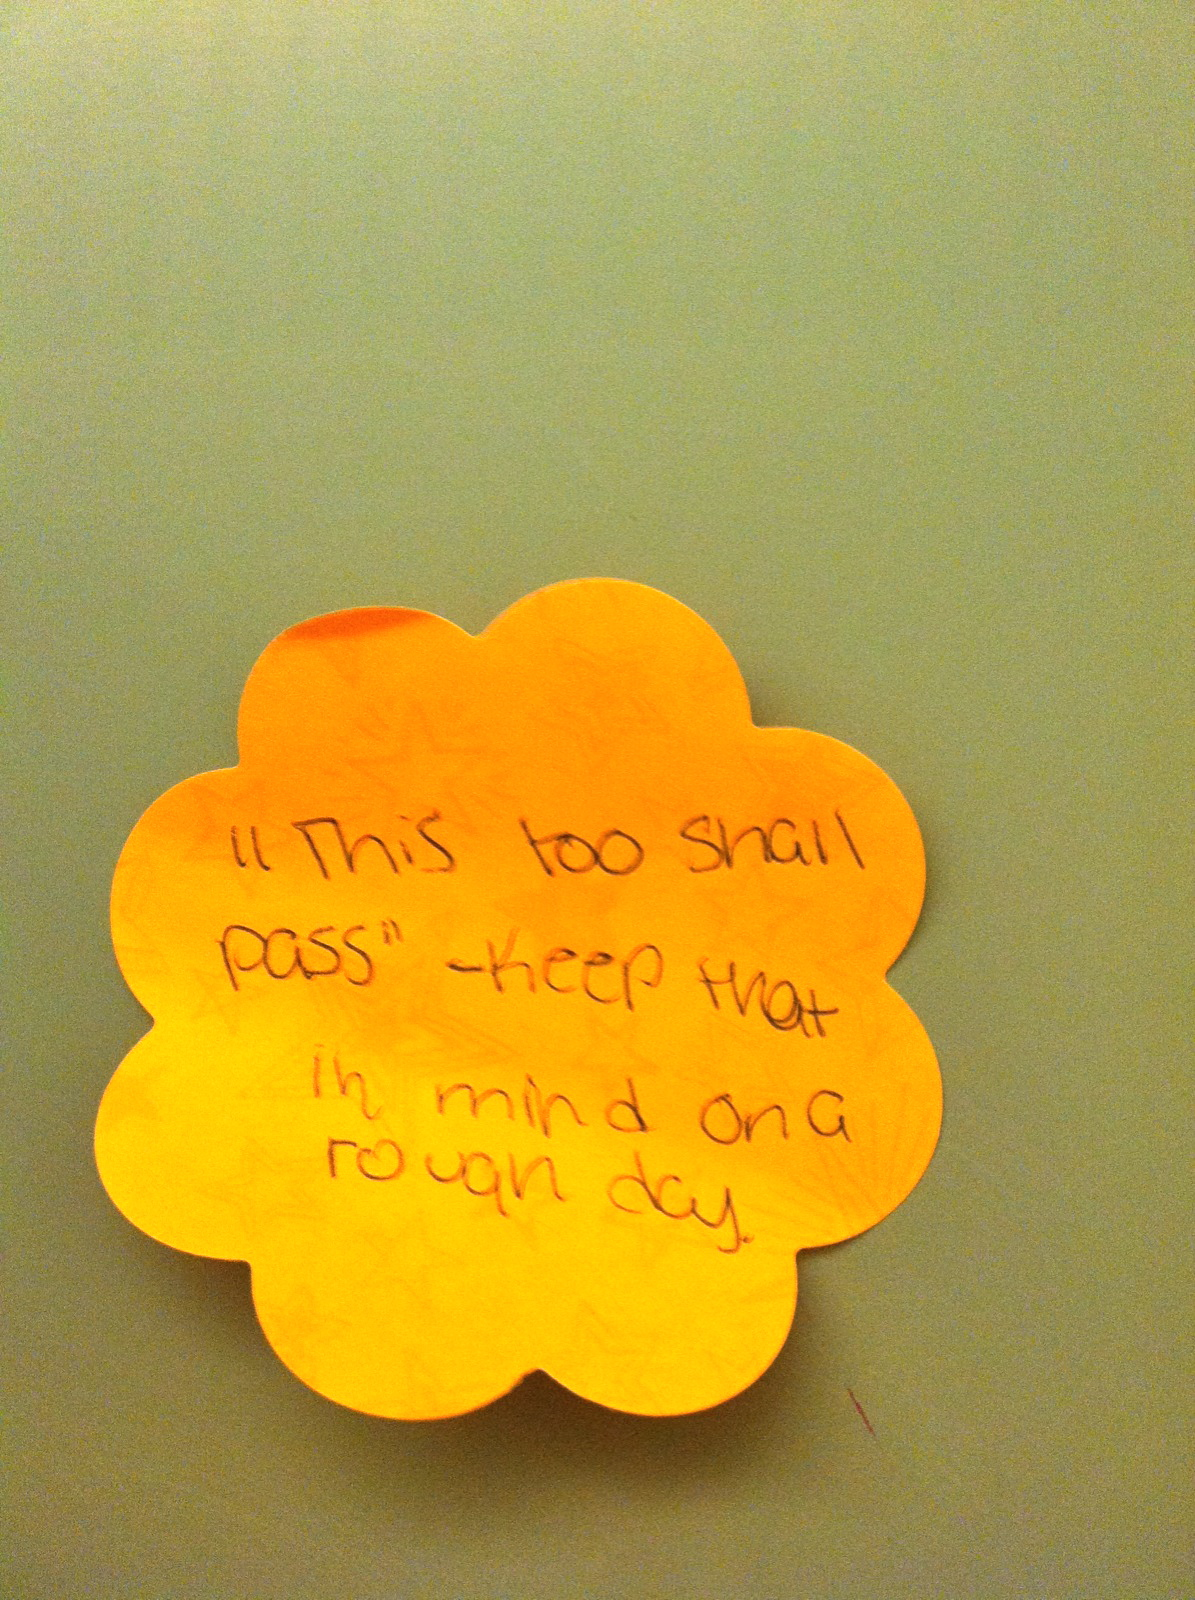 Inspirational Messages Leave Inspirational Messages On Sticky Notes In Public Bathrooms